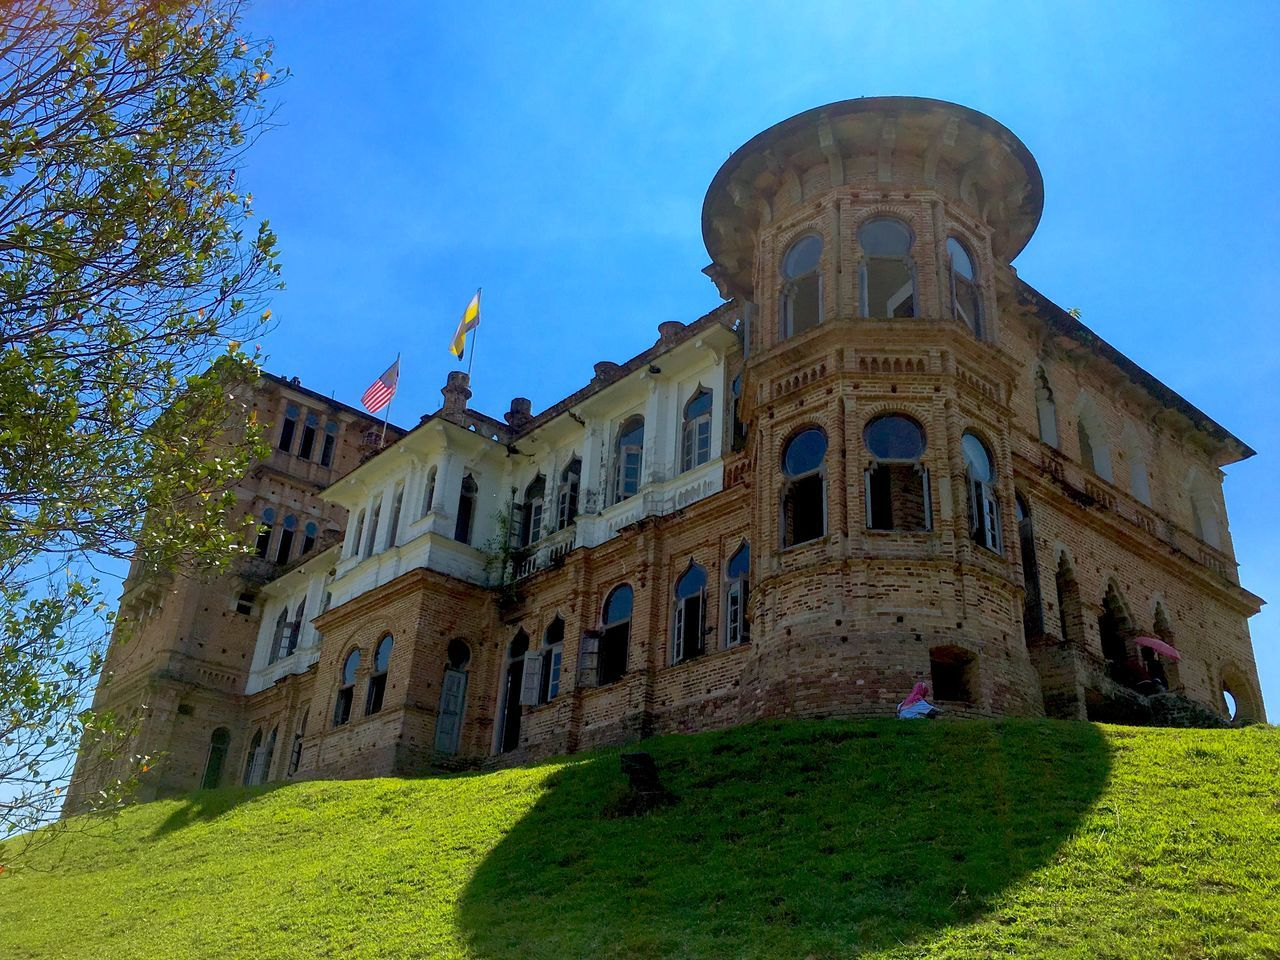 Landscapes With WhiteWall Kellie' Castle Old Architecture Amazing Architecture Old Buildings Ipoholdtown Love Traveling Great View Architecturelovers Abandoned Buildings